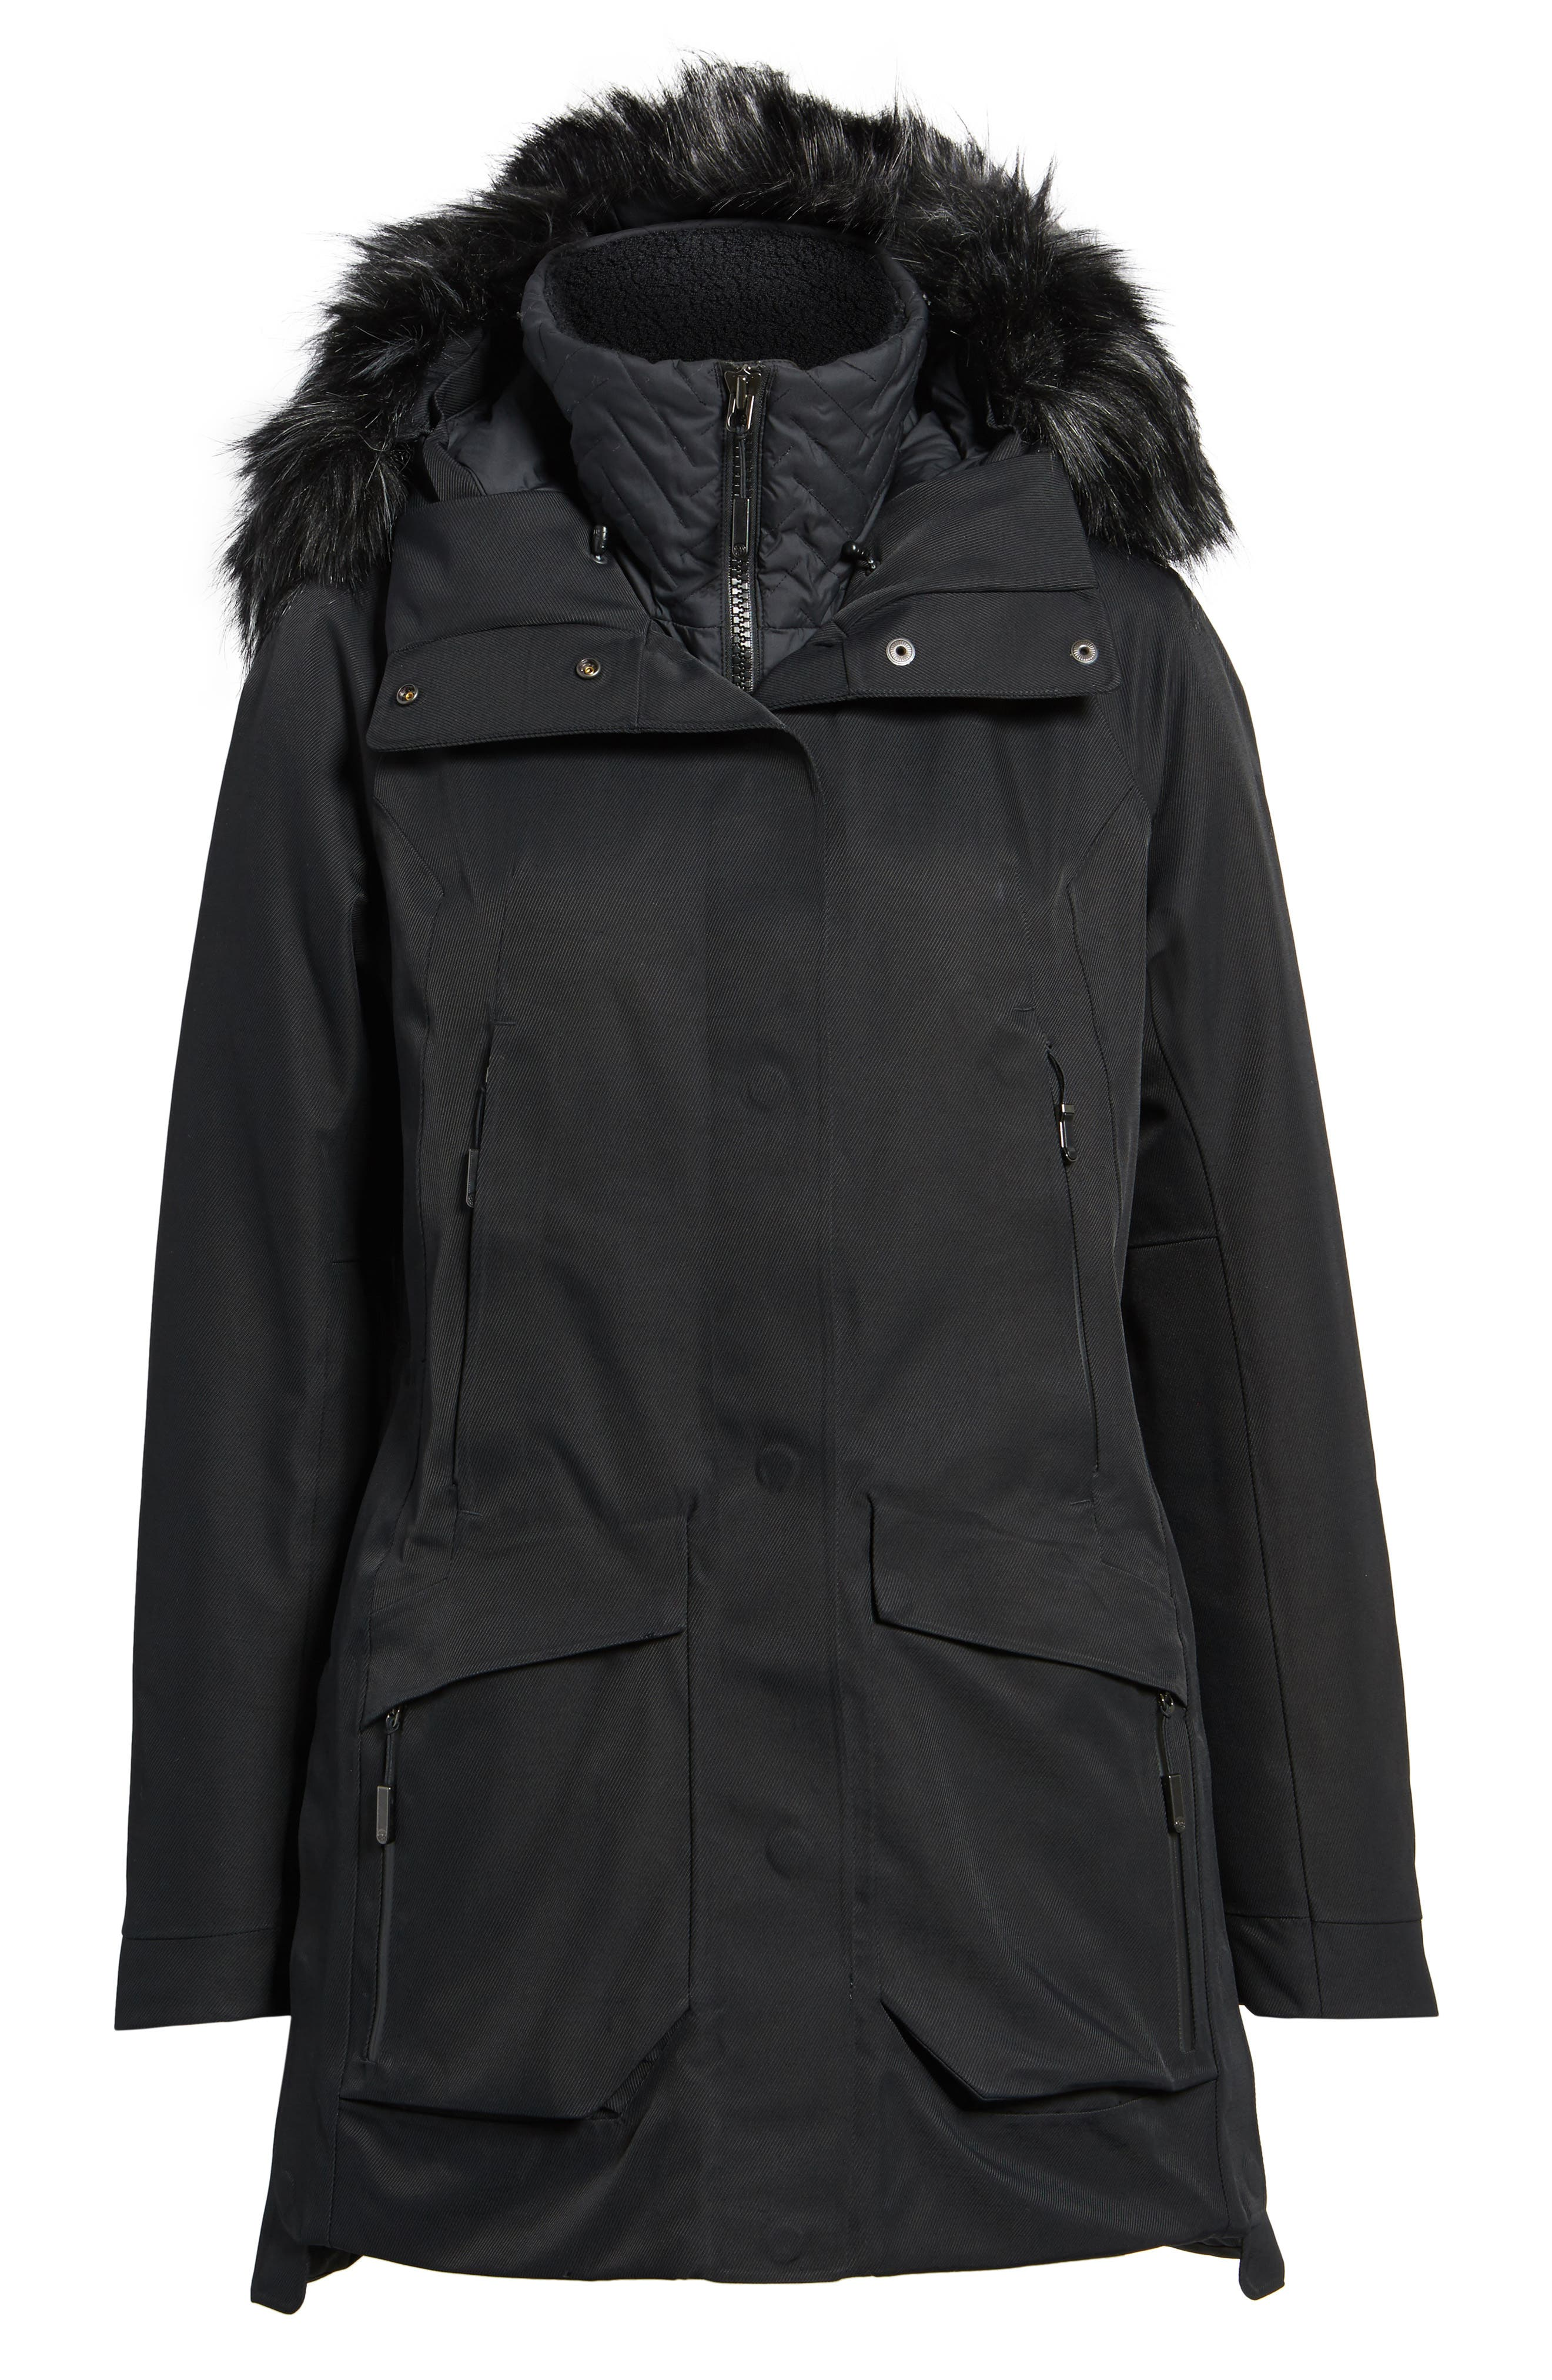 Cryos Gore-Tex<sup>®</sup> Tri-Climate PrimaLoft Gold Insulated Waterproof & Windproof Jacket,                             Alternate thumbnail 6, color,                             001